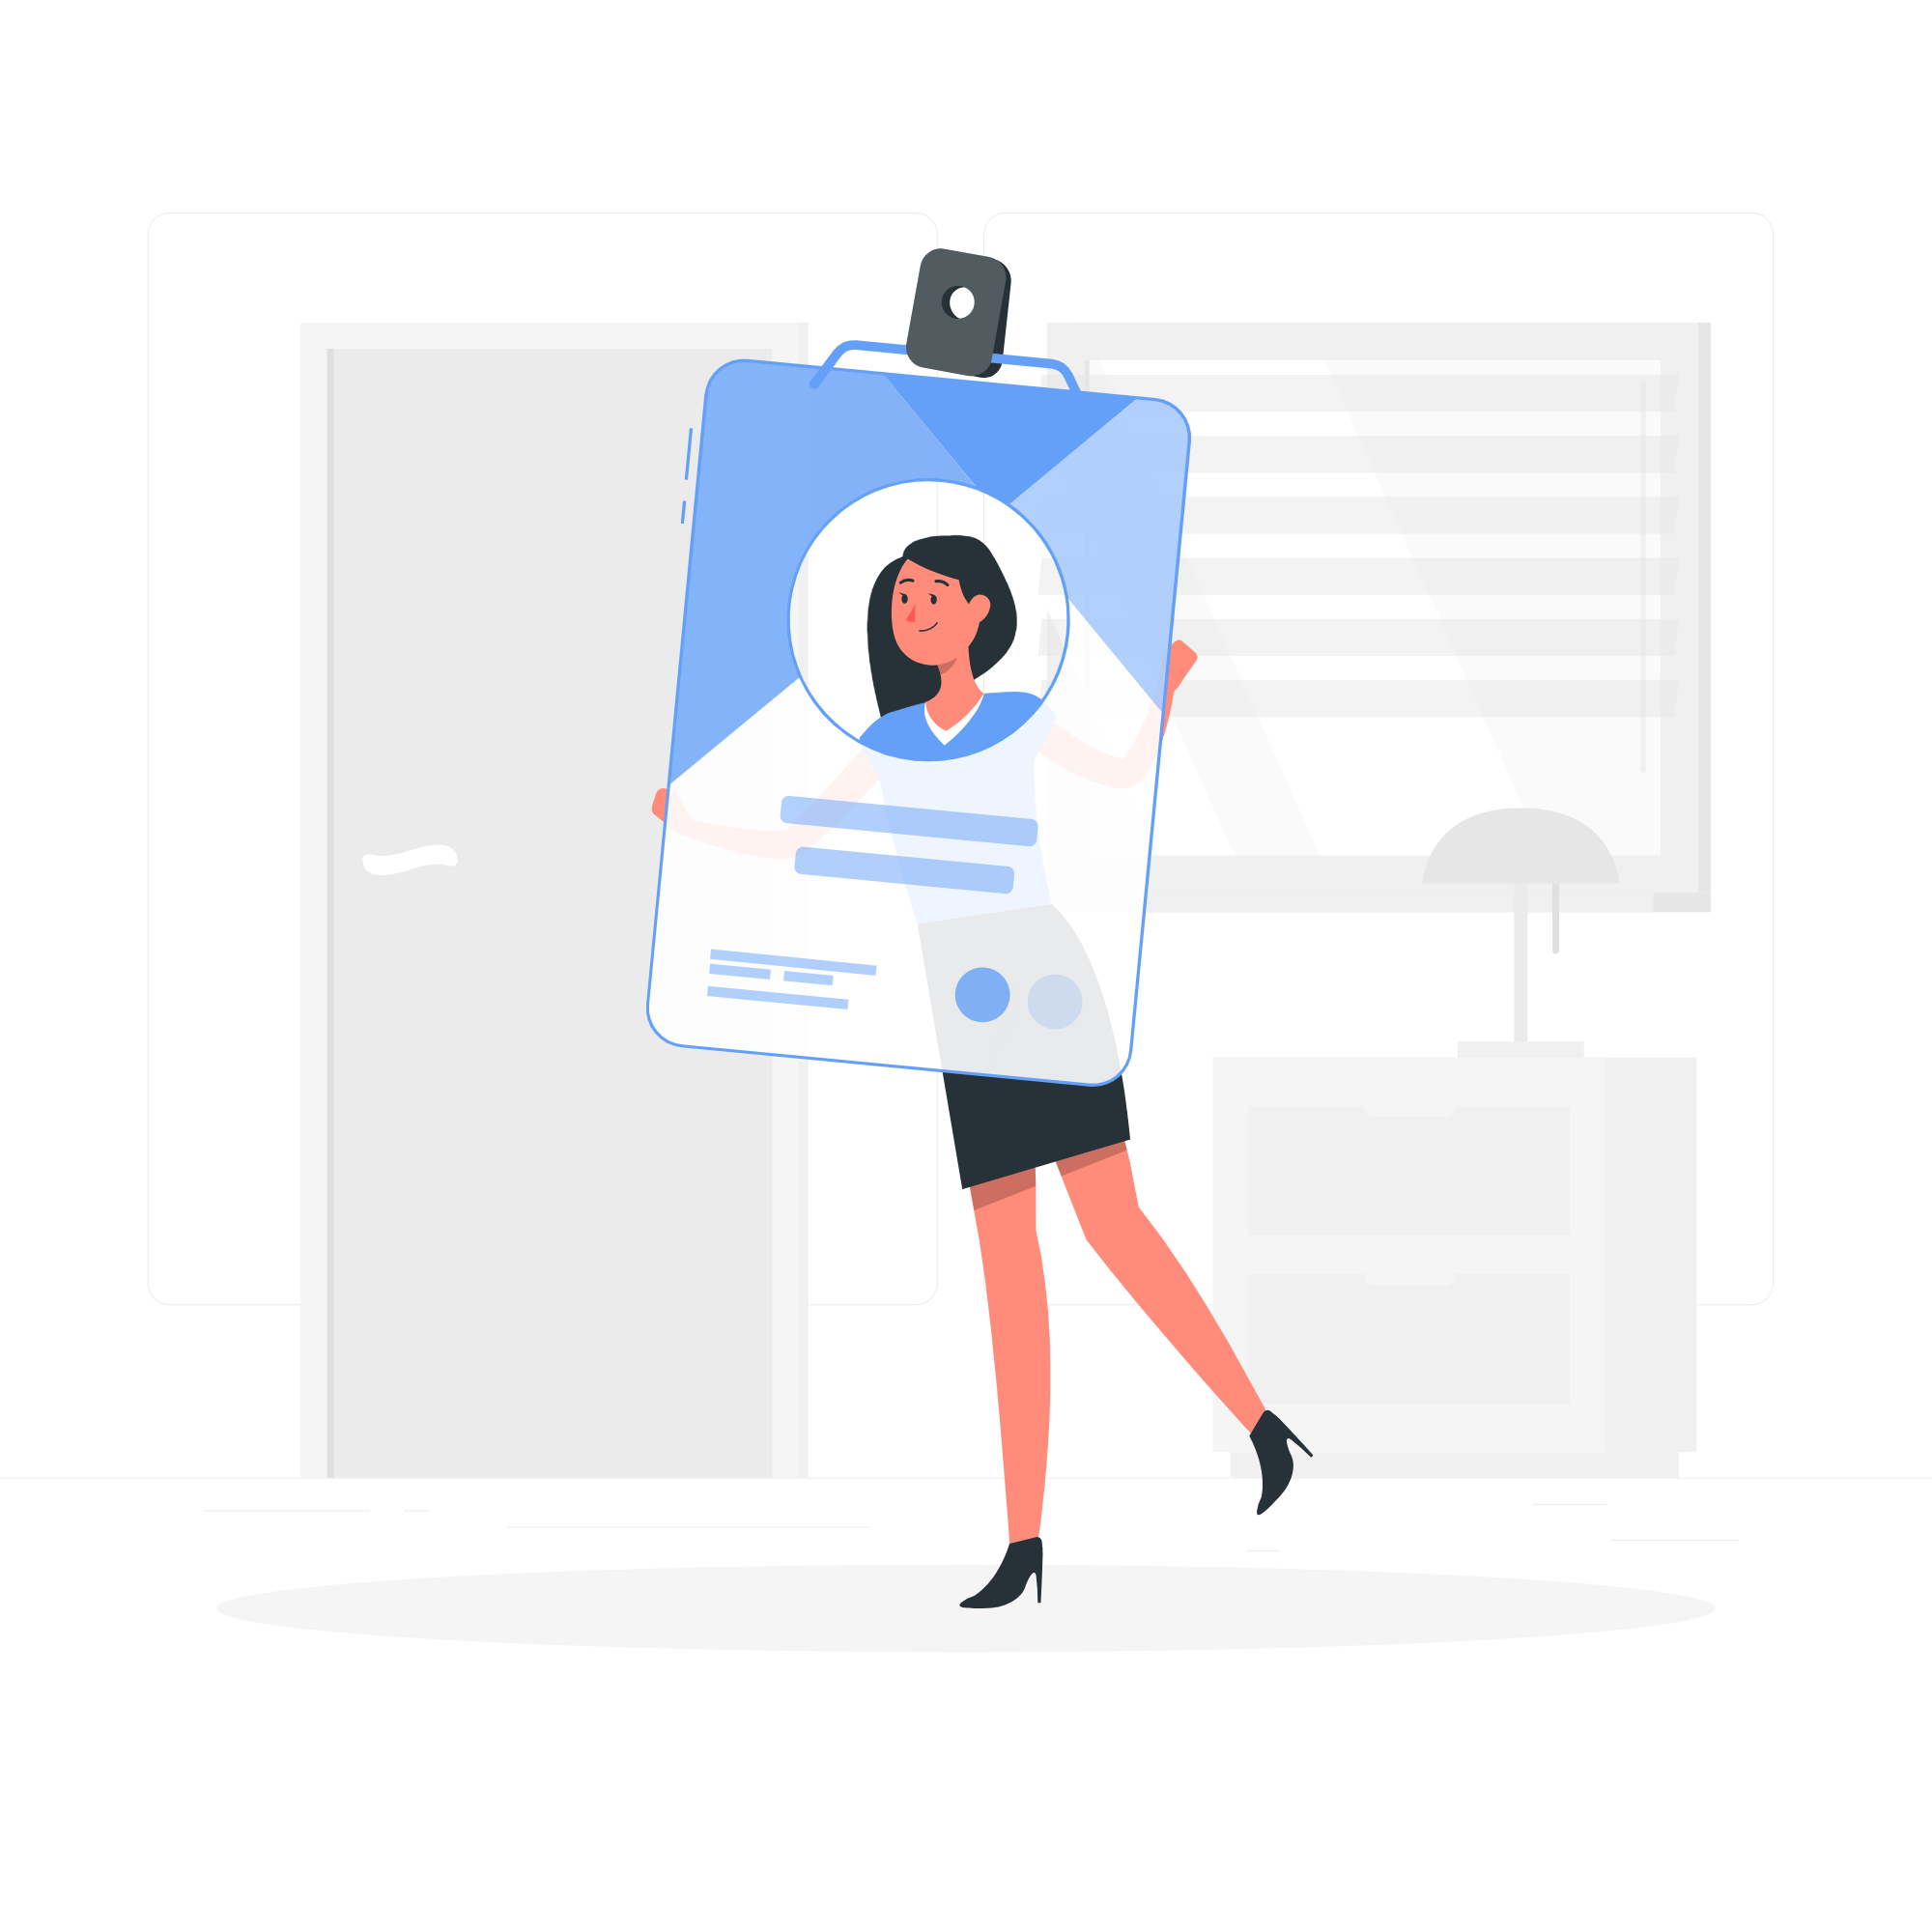 Personalize Transactional Emails